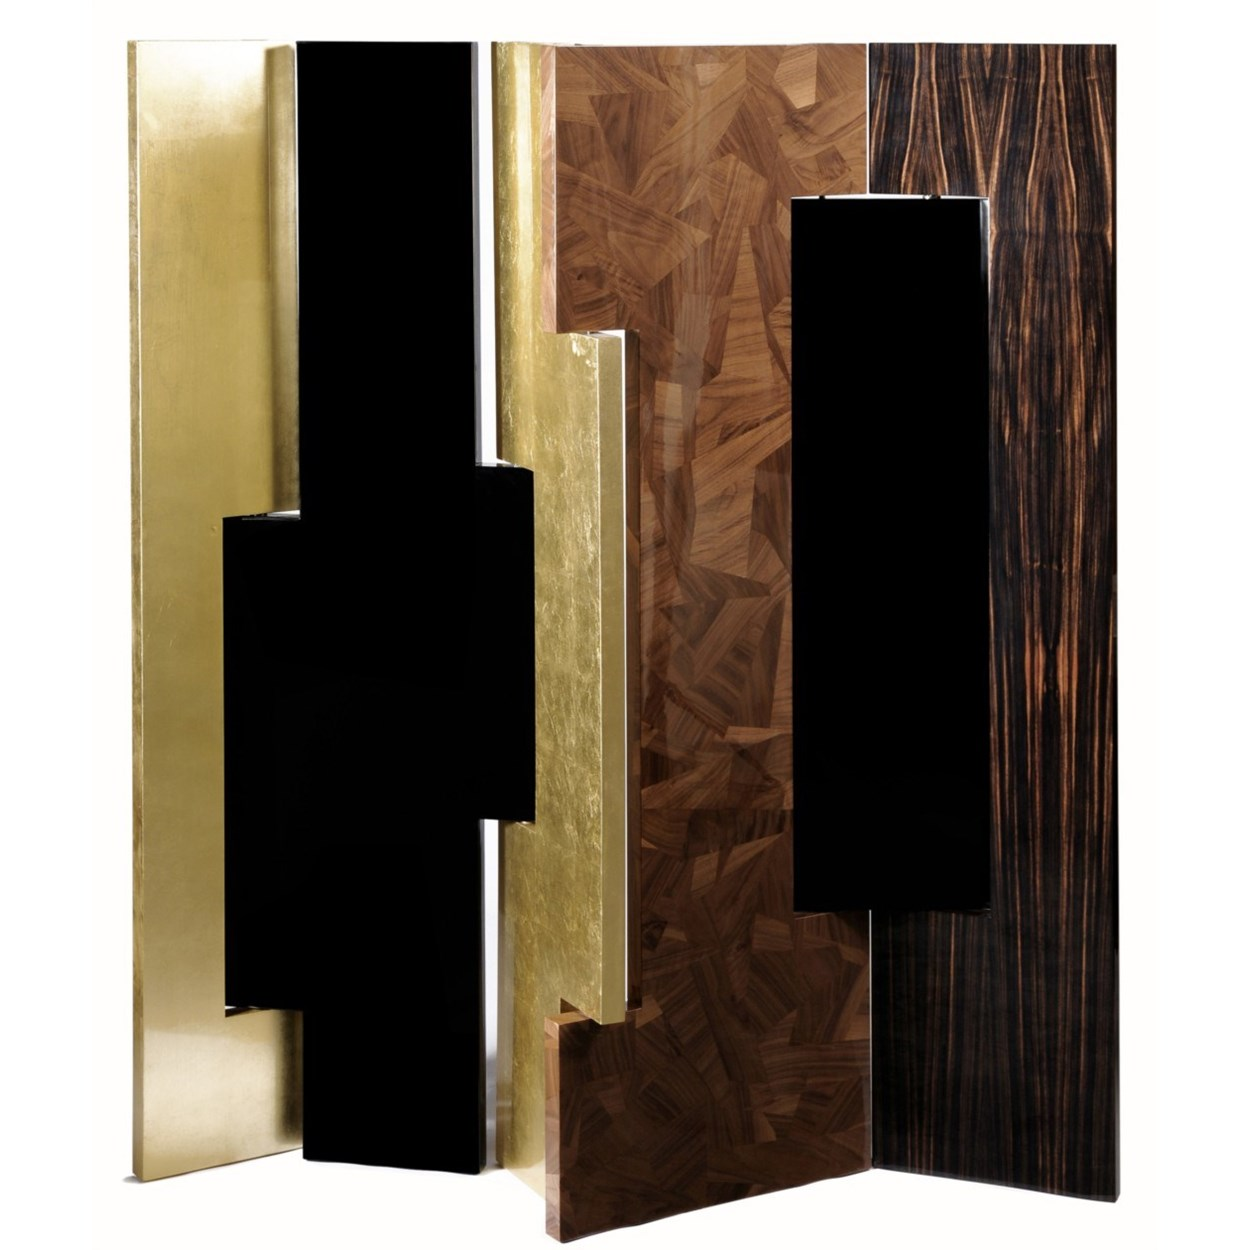 modern screens and room dividers modern screens and room dividers Modern screens and room dividers: Amazing selection for living room boca do lobo screen